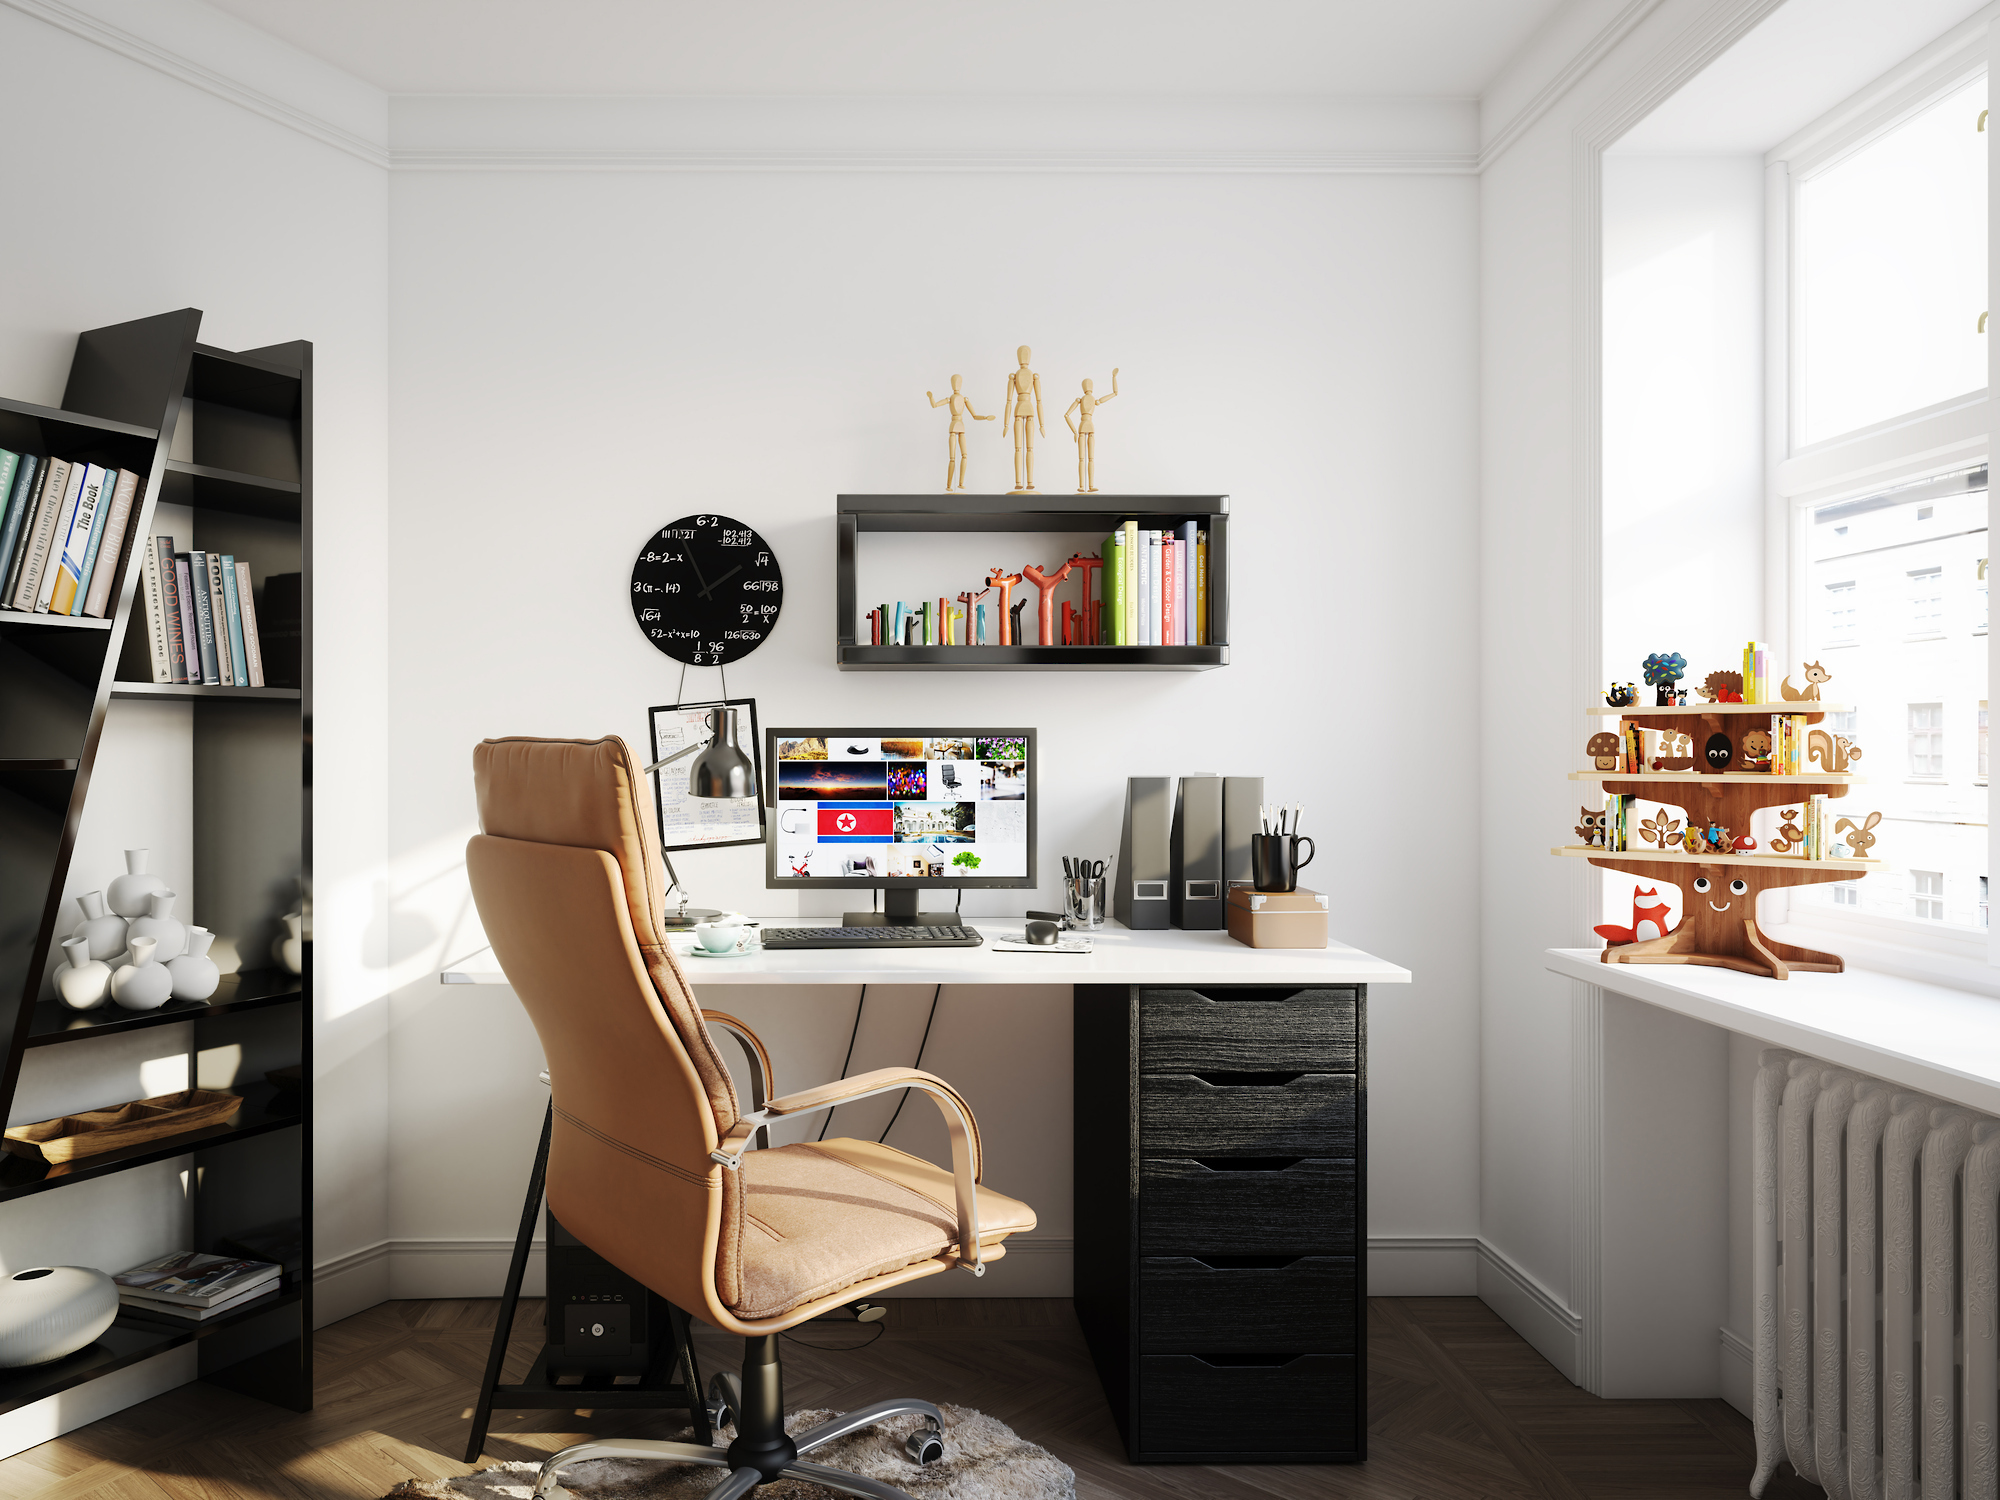 Freelancing with a disability: Designing an accessible work from home space